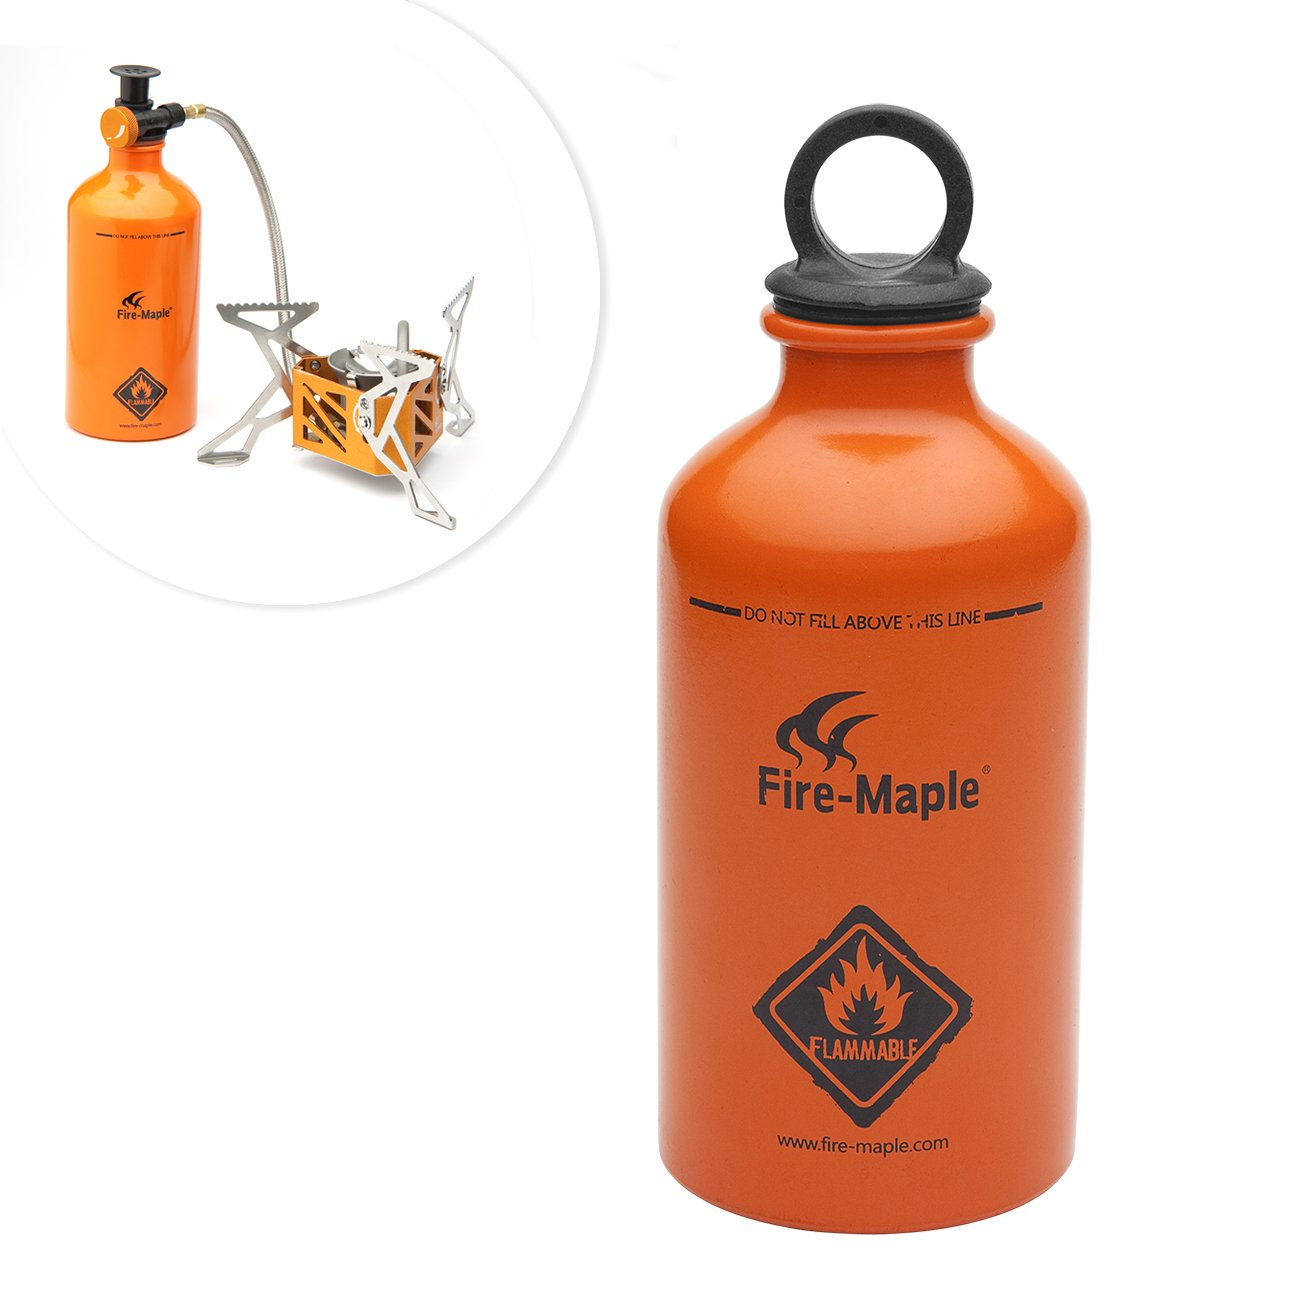 Fire-Maple FMS-B330 botella de combustible gasolina para horno hornillo estufa de aluminio 330ML: Amazon.es: Electrónica